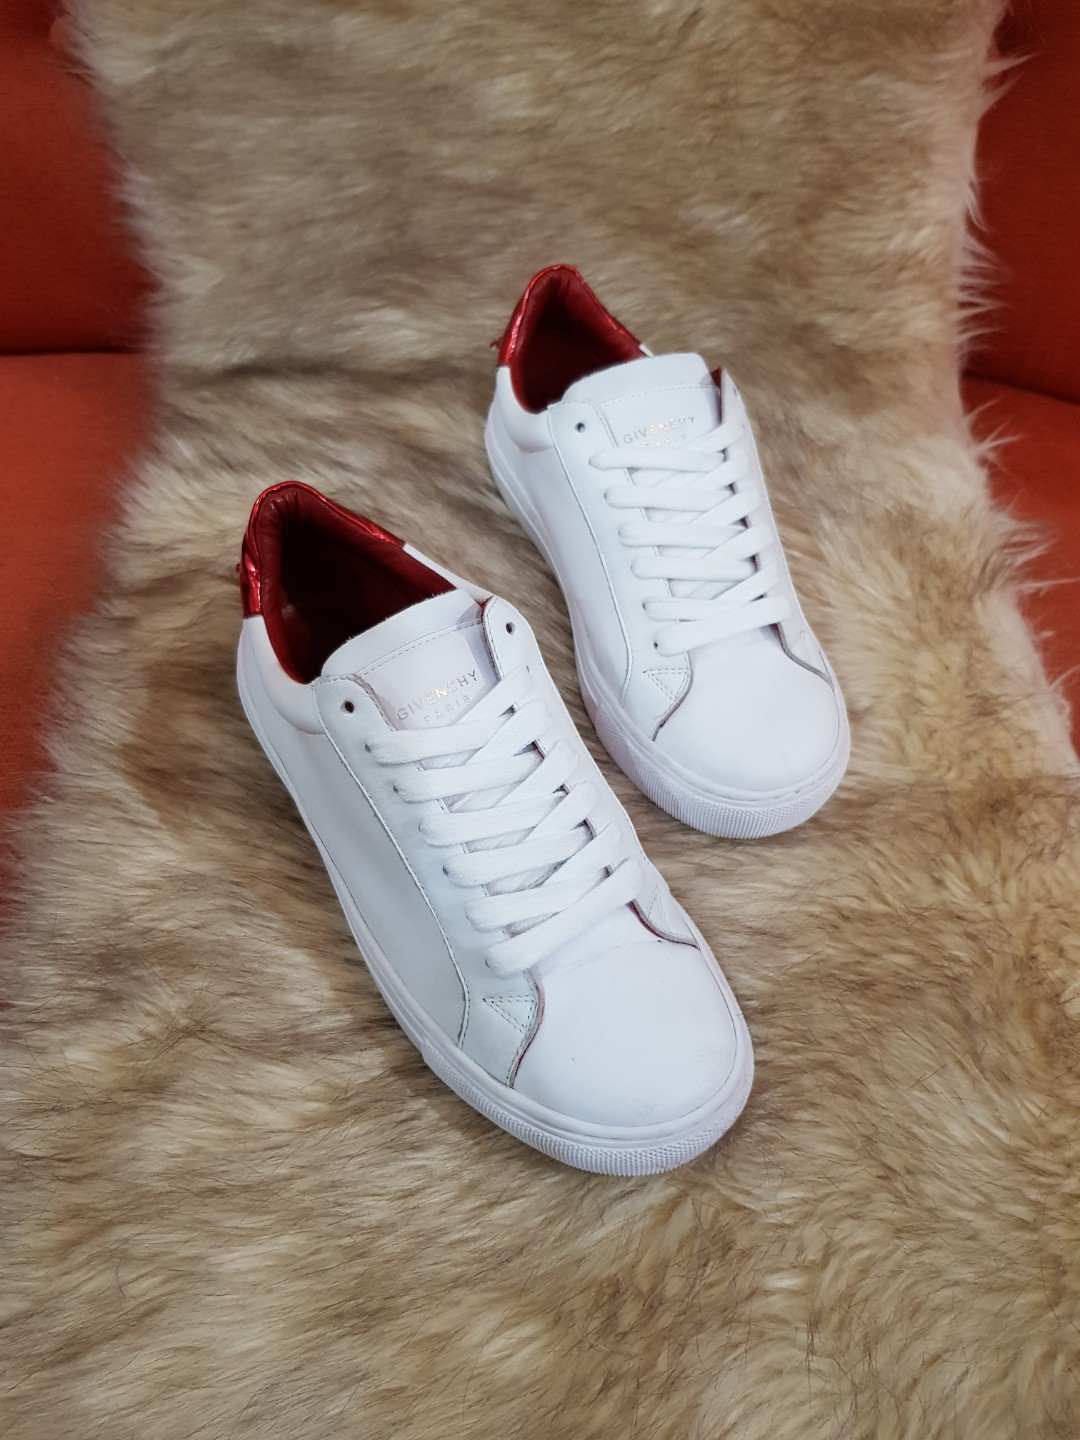 d5bd68b7507 Authentic Givenchy Urban Knots White Leather Ladies Sneakers Size 36 ...